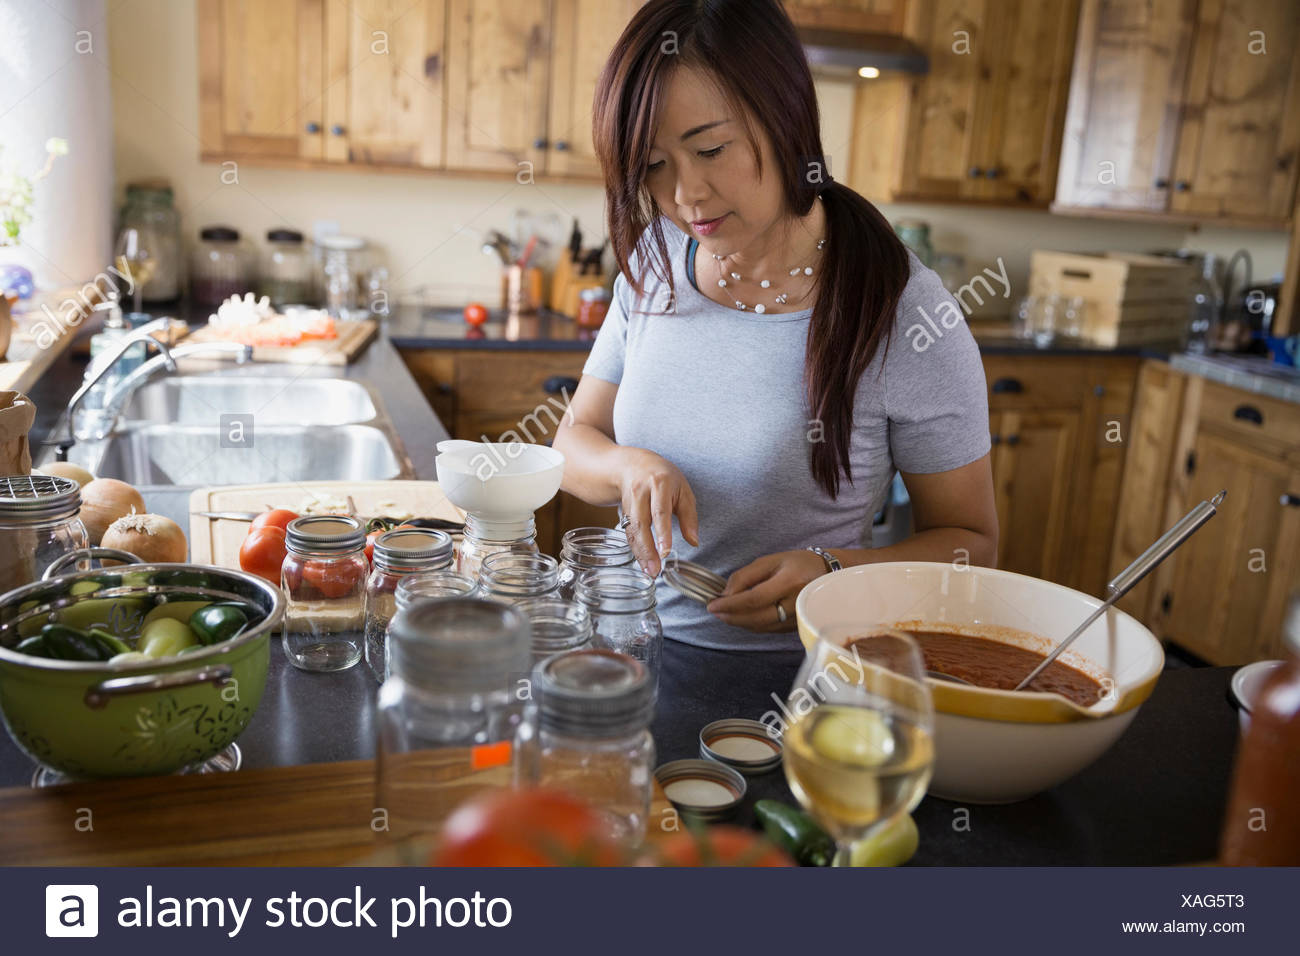 Woman canning tomato sauce in kitchen - Stock Image